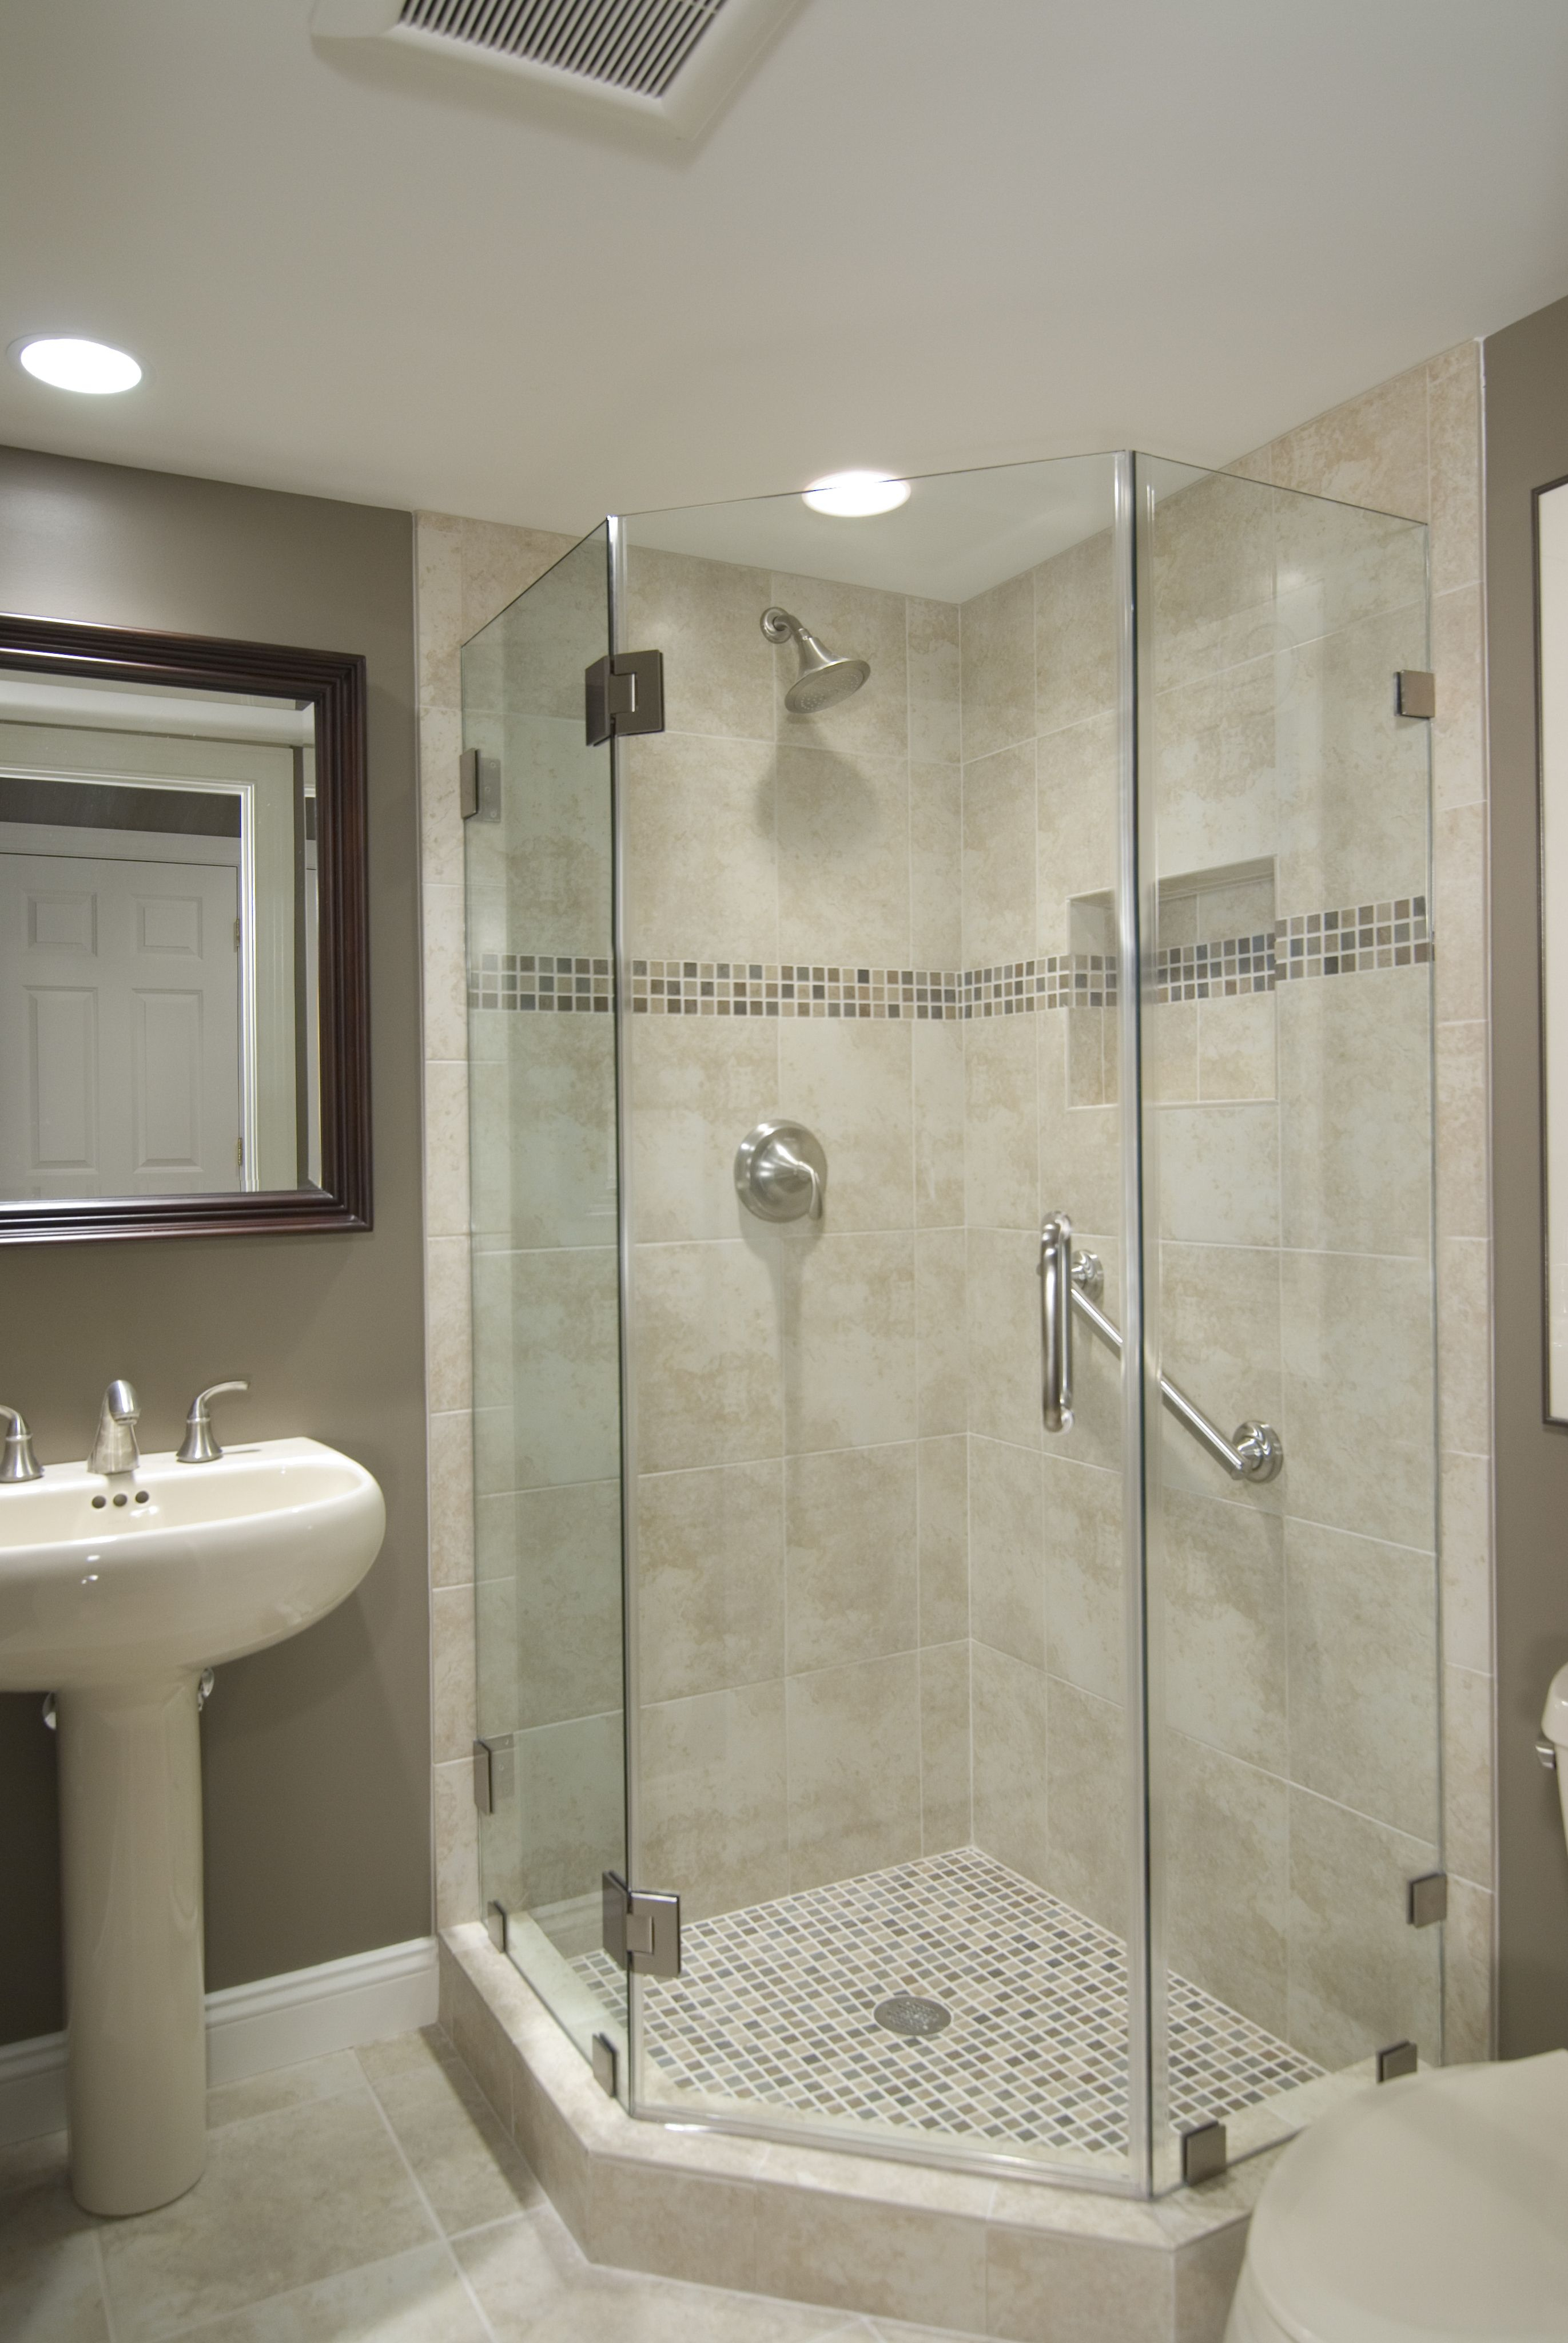 Basement Bathroom Ideas On Budget Low Ceiling And For Small Space Layjao